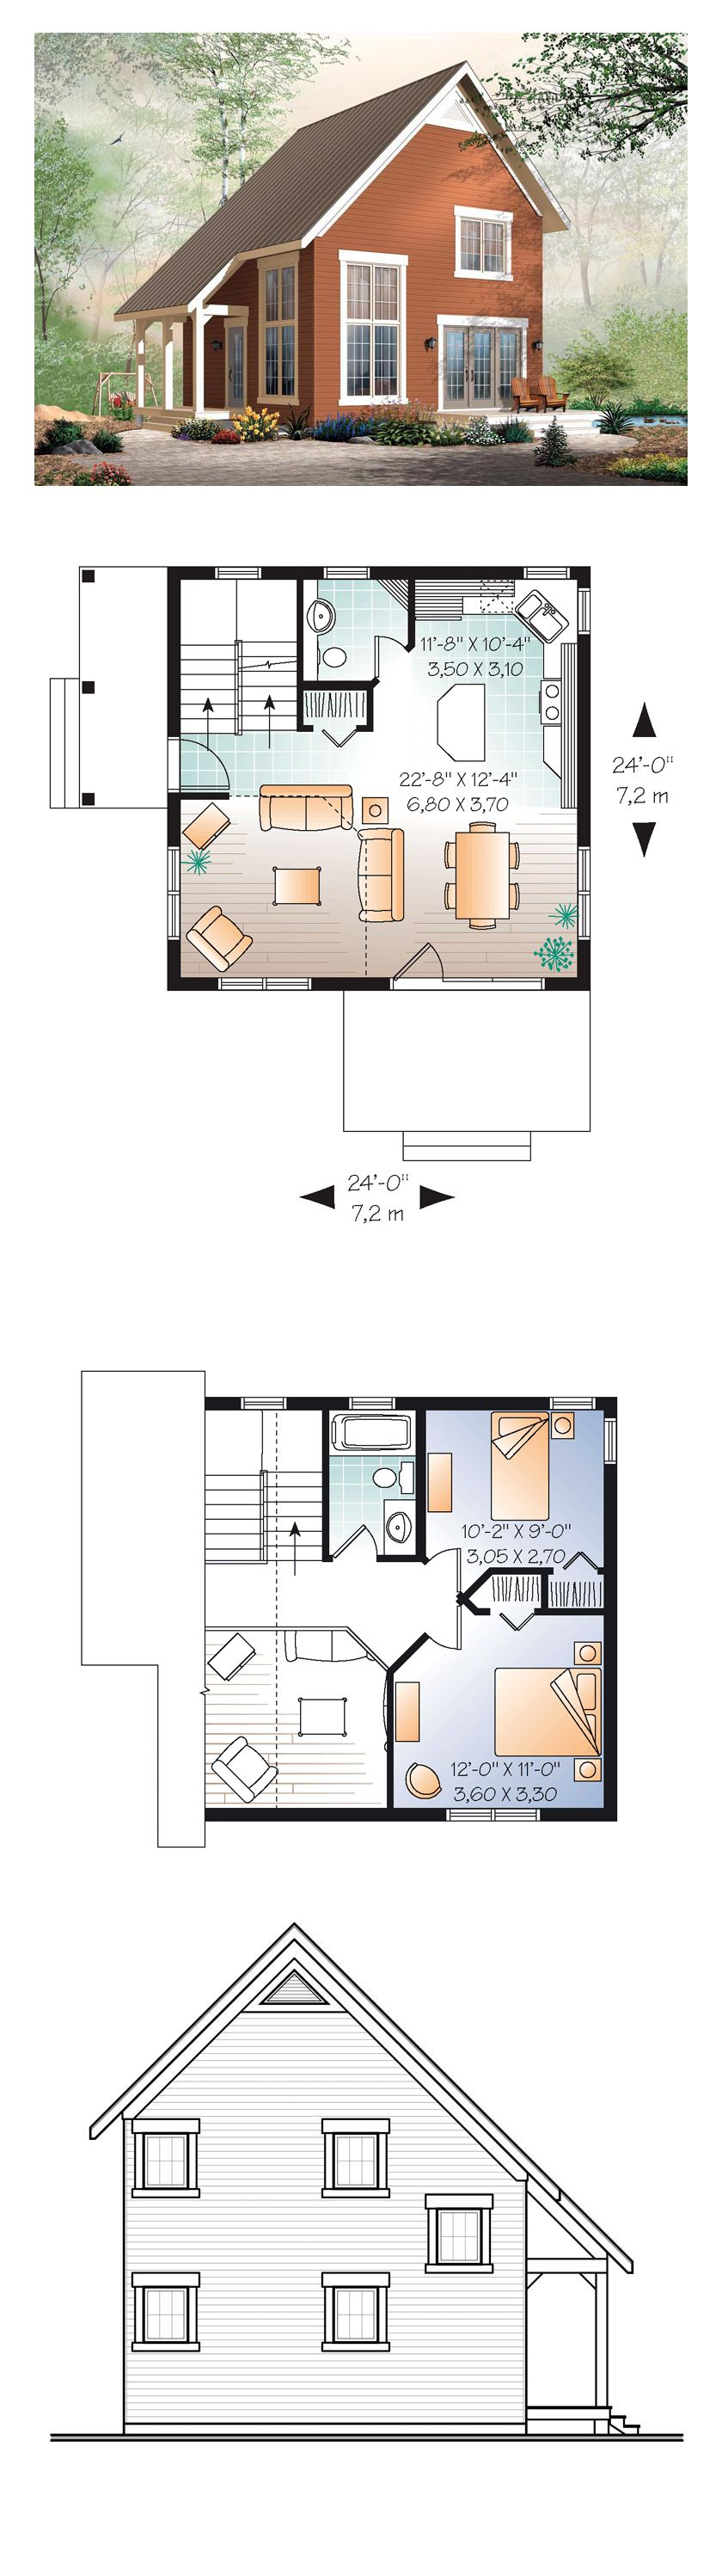 Narrow Lot House Plan 76149 | Total Living Area: 1050 sq. ft., 2 bedrooms and 1.5 bathrooms. Cathedral ceiling in the living room. Kitchen with central island. The staircase is close to the entry for an easy access to the basement. #houseplan #narrowlot